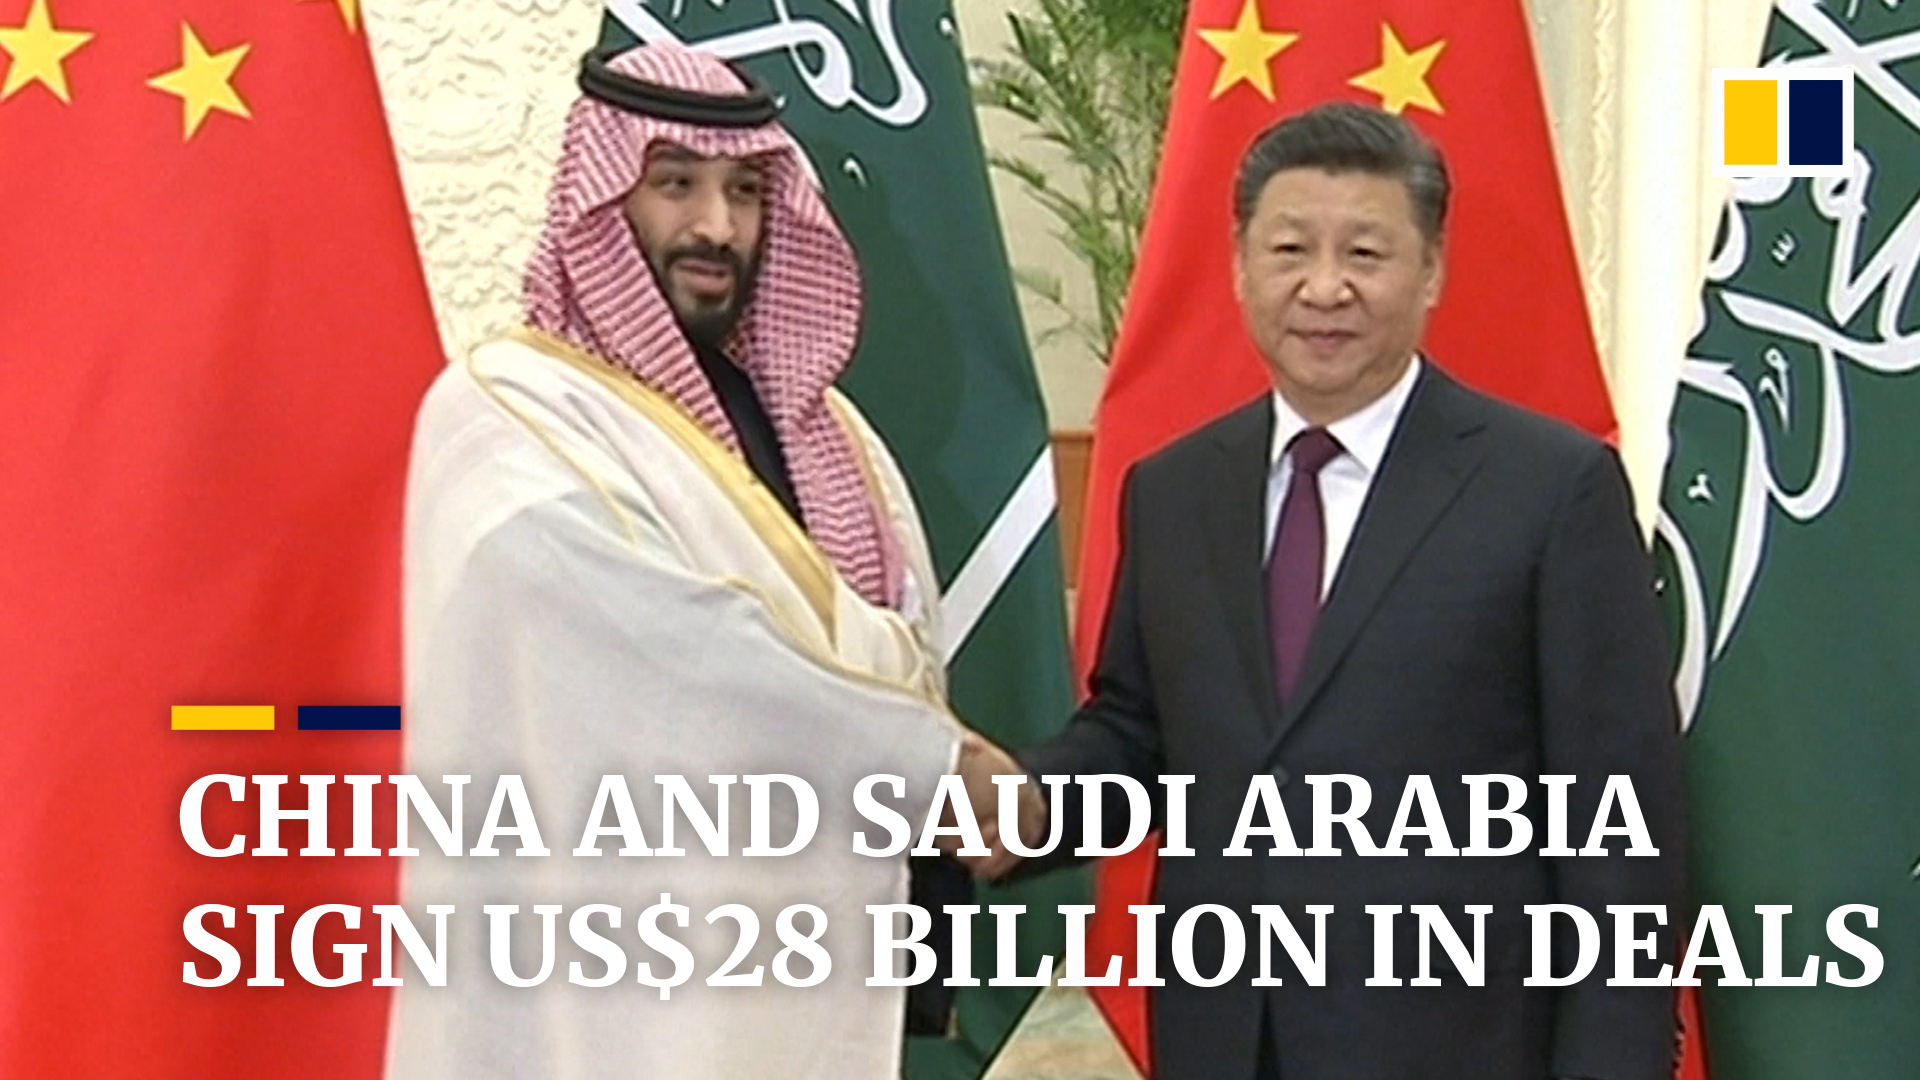 China and Saudi Arabia seal US$28 billion in deals | South